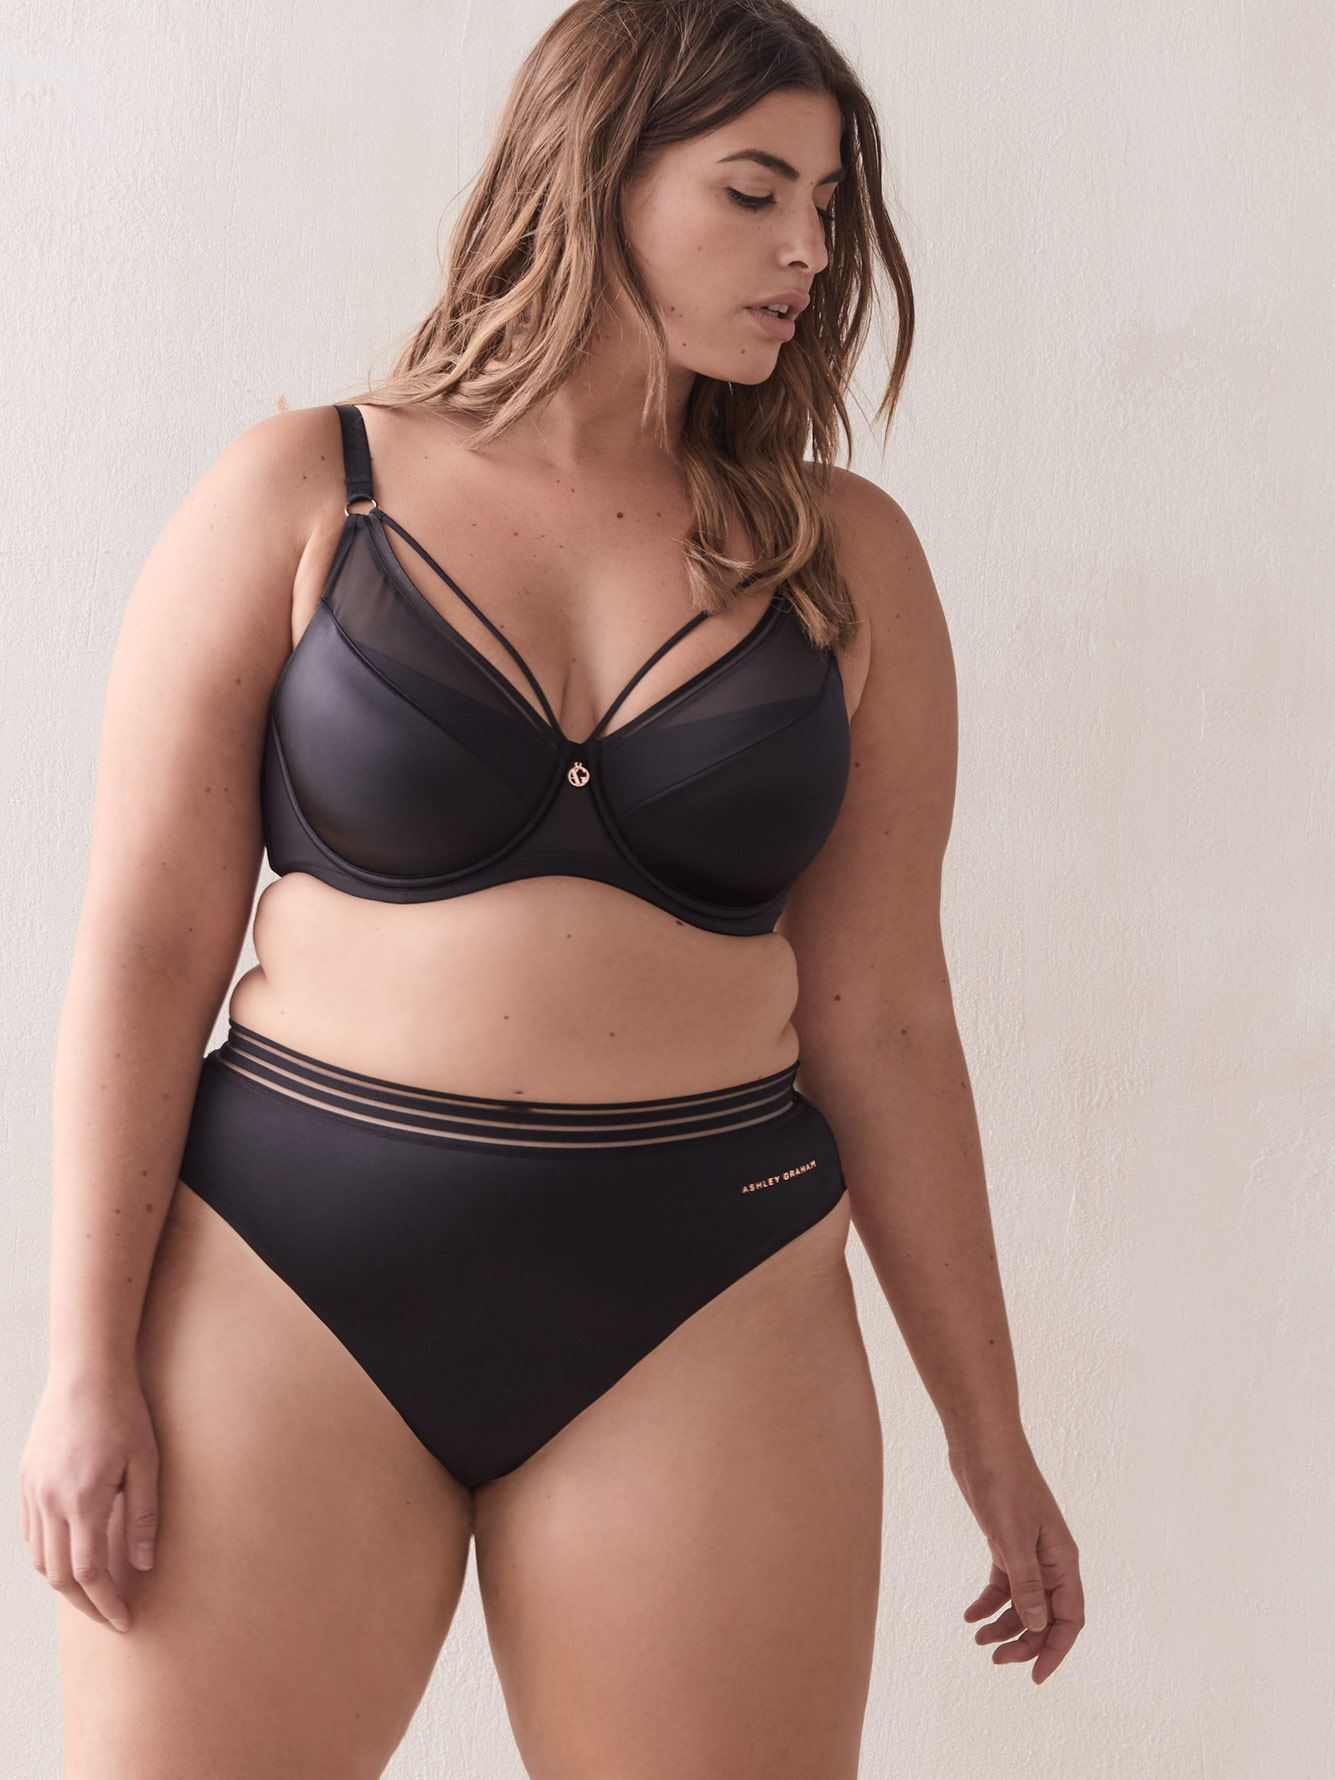 Diva Demi Cup Bra, G & H Cups - Ashley Graham